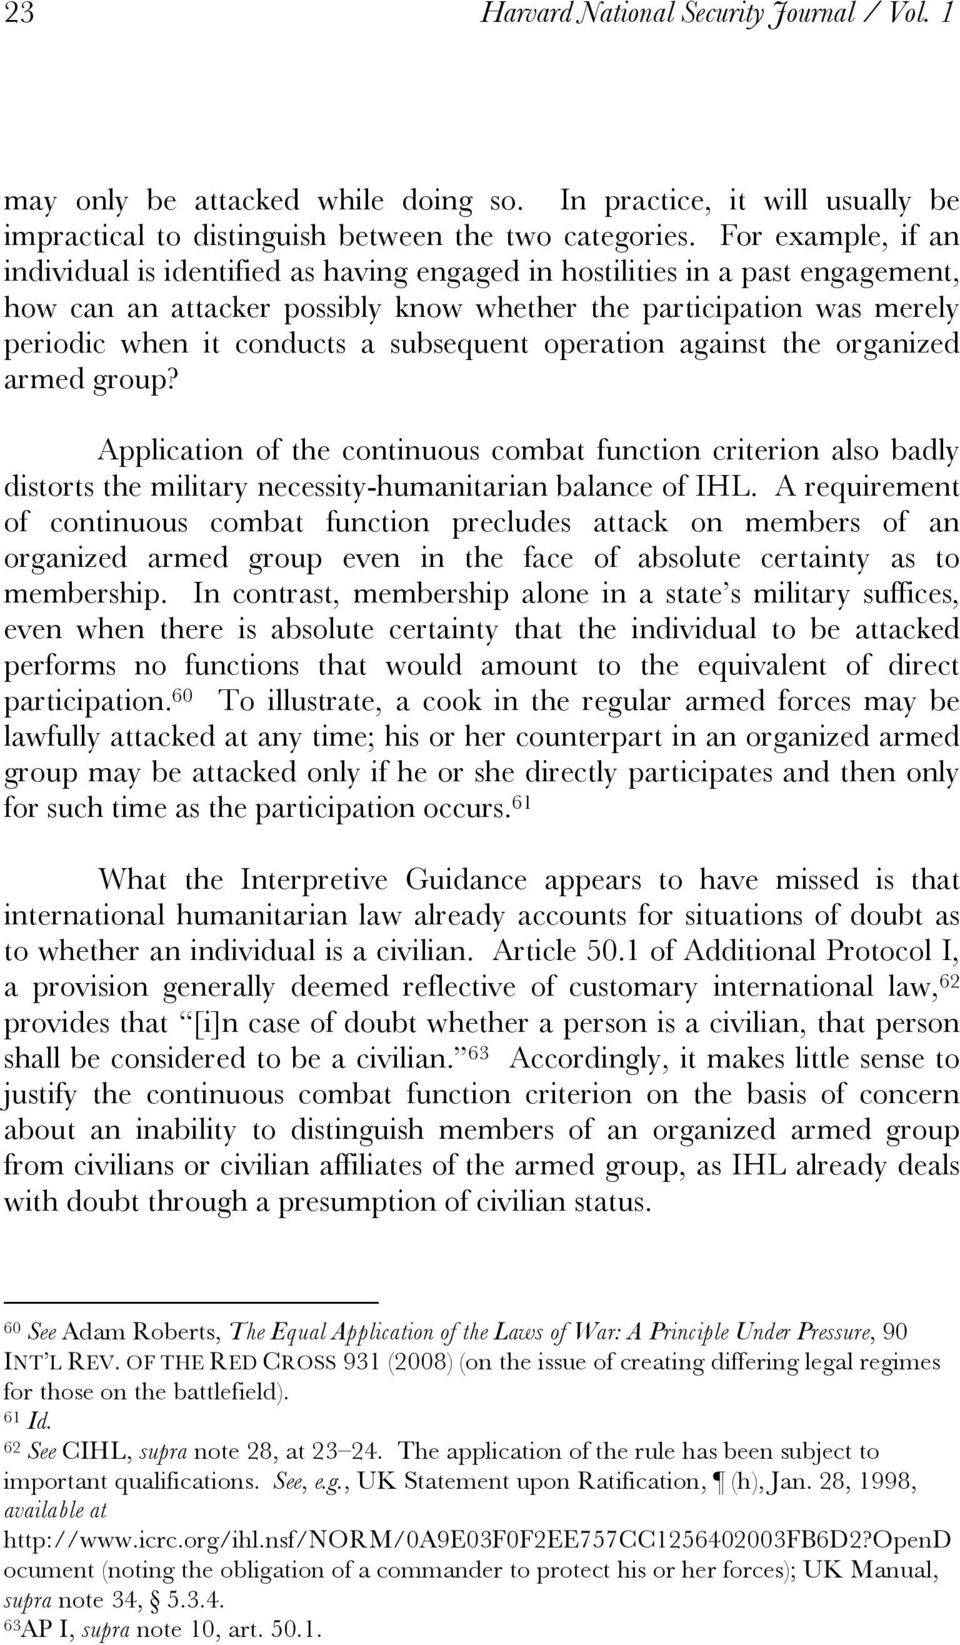 subsequent operation against the organized armed group? Application of the continuous combat function criterion also badly distorts the military necessity-humanitarian balance of IHL.